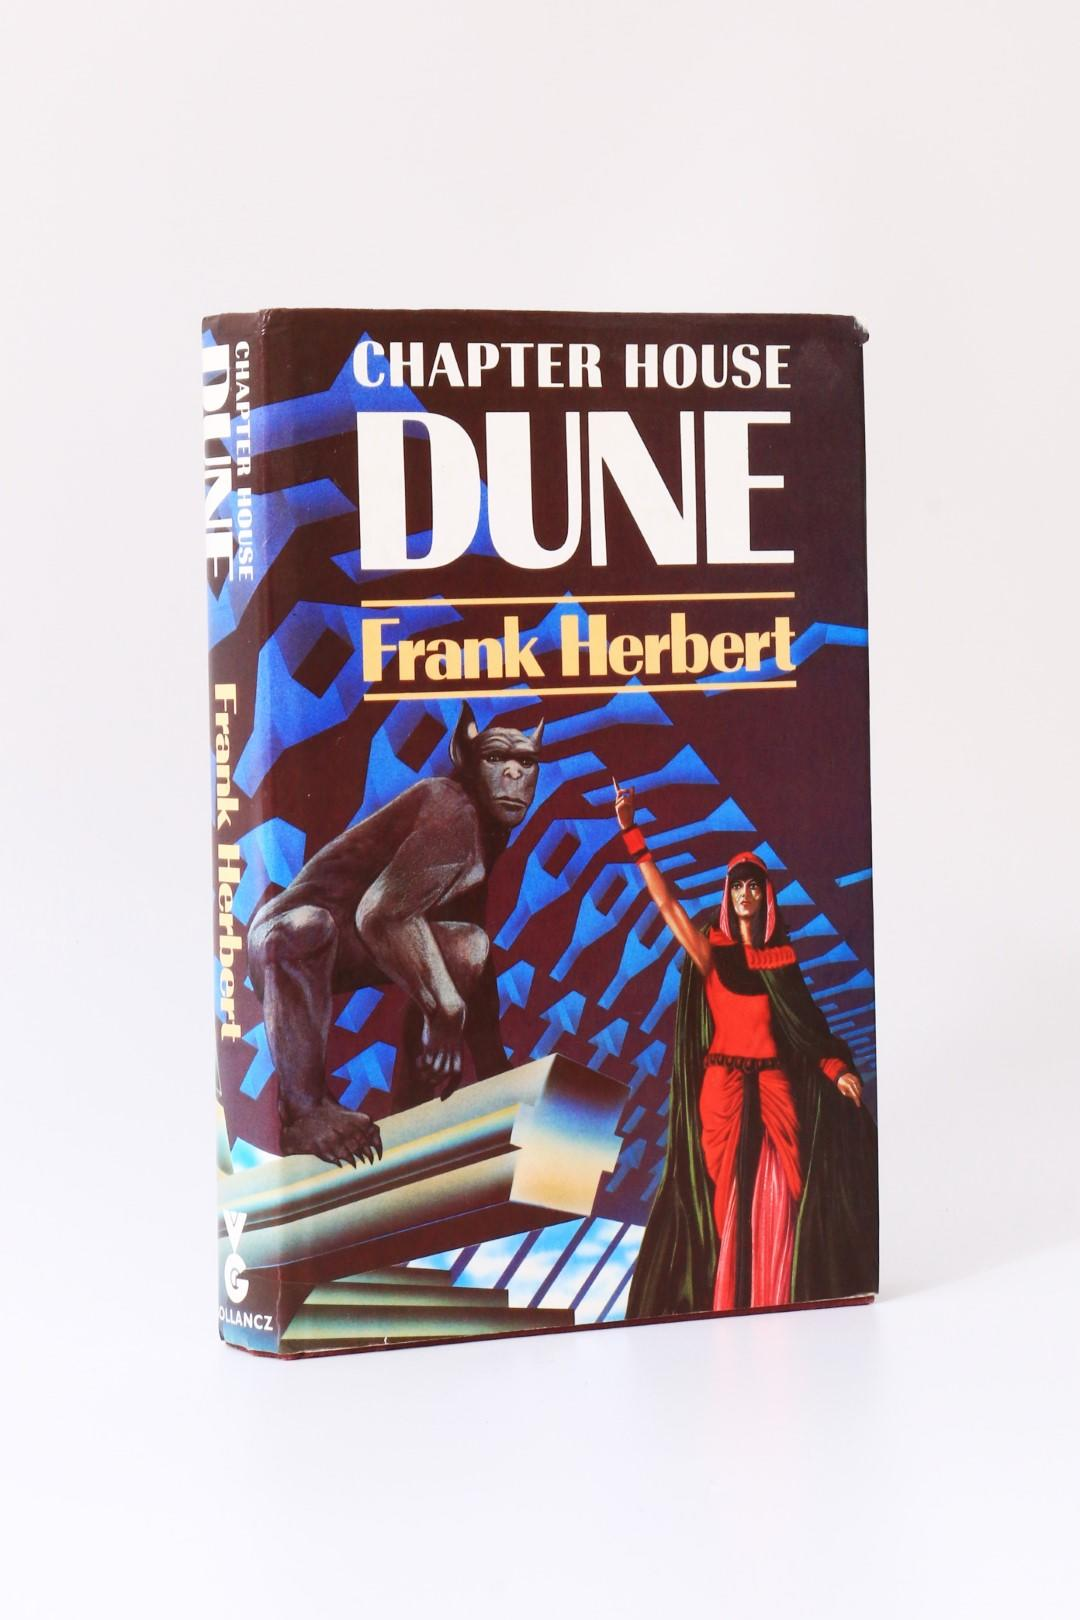 Frank Herbert - Chapter House Dune - Gollancz, 1985, Signed First Edition.